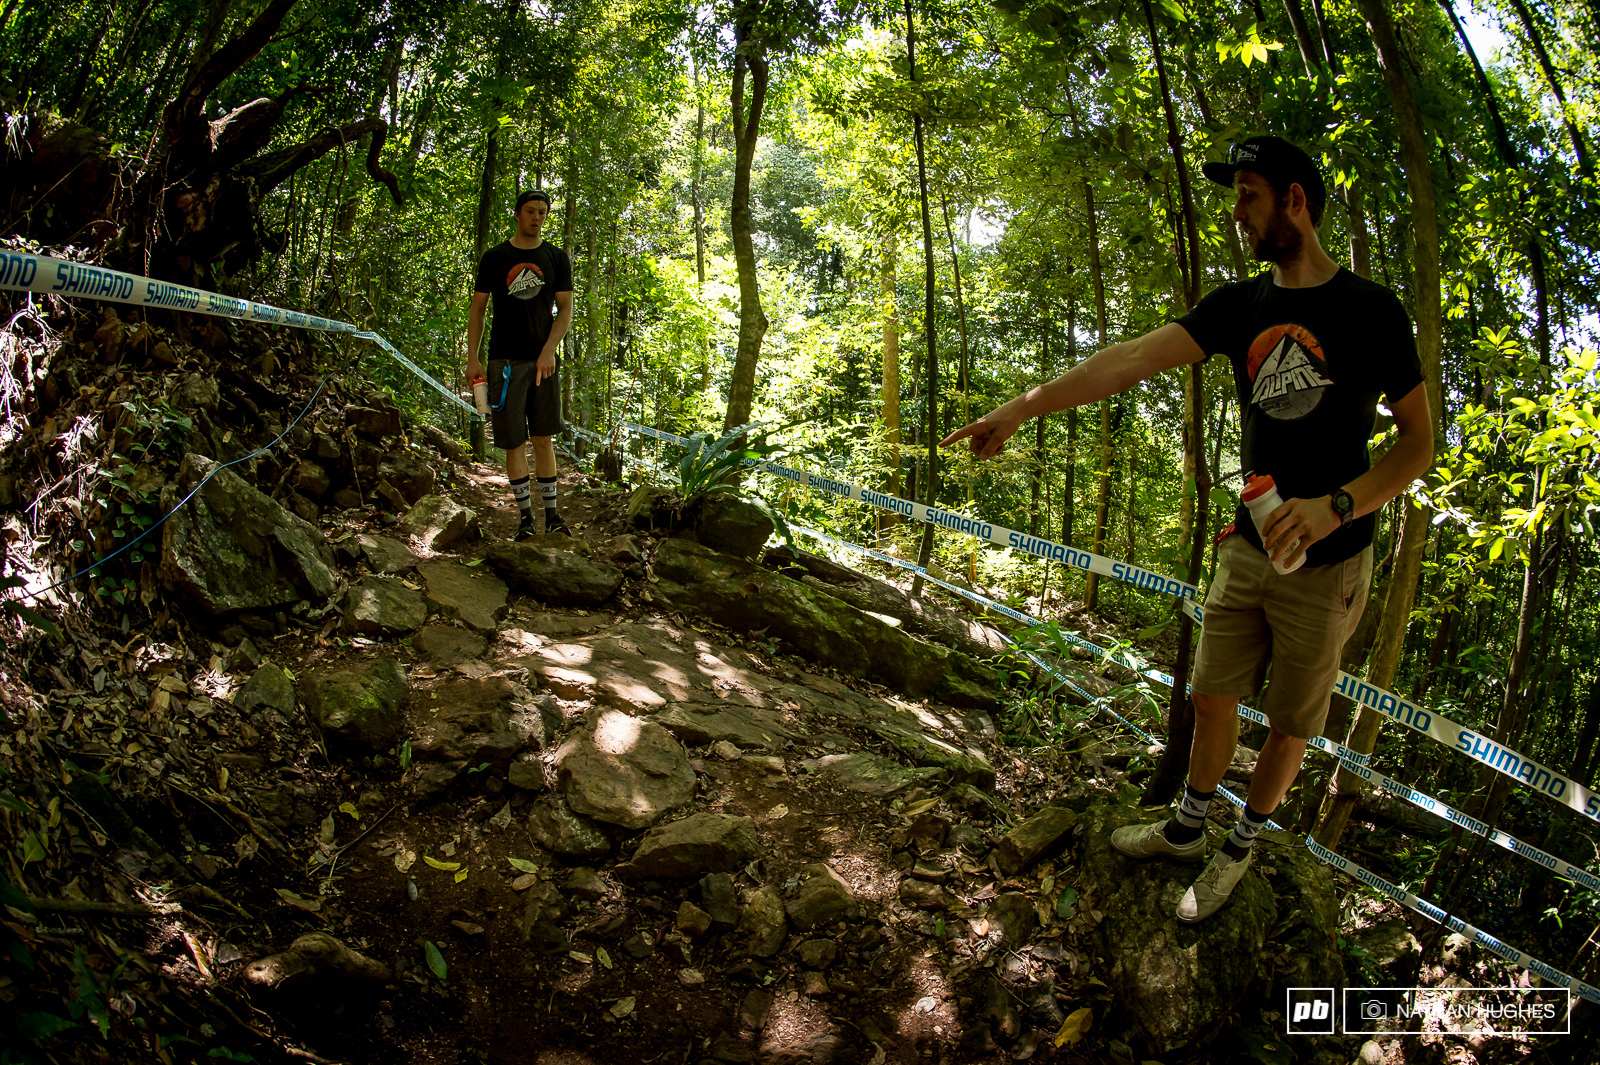 Simmonds and Beaumont consider how on the rock gap could be up top.